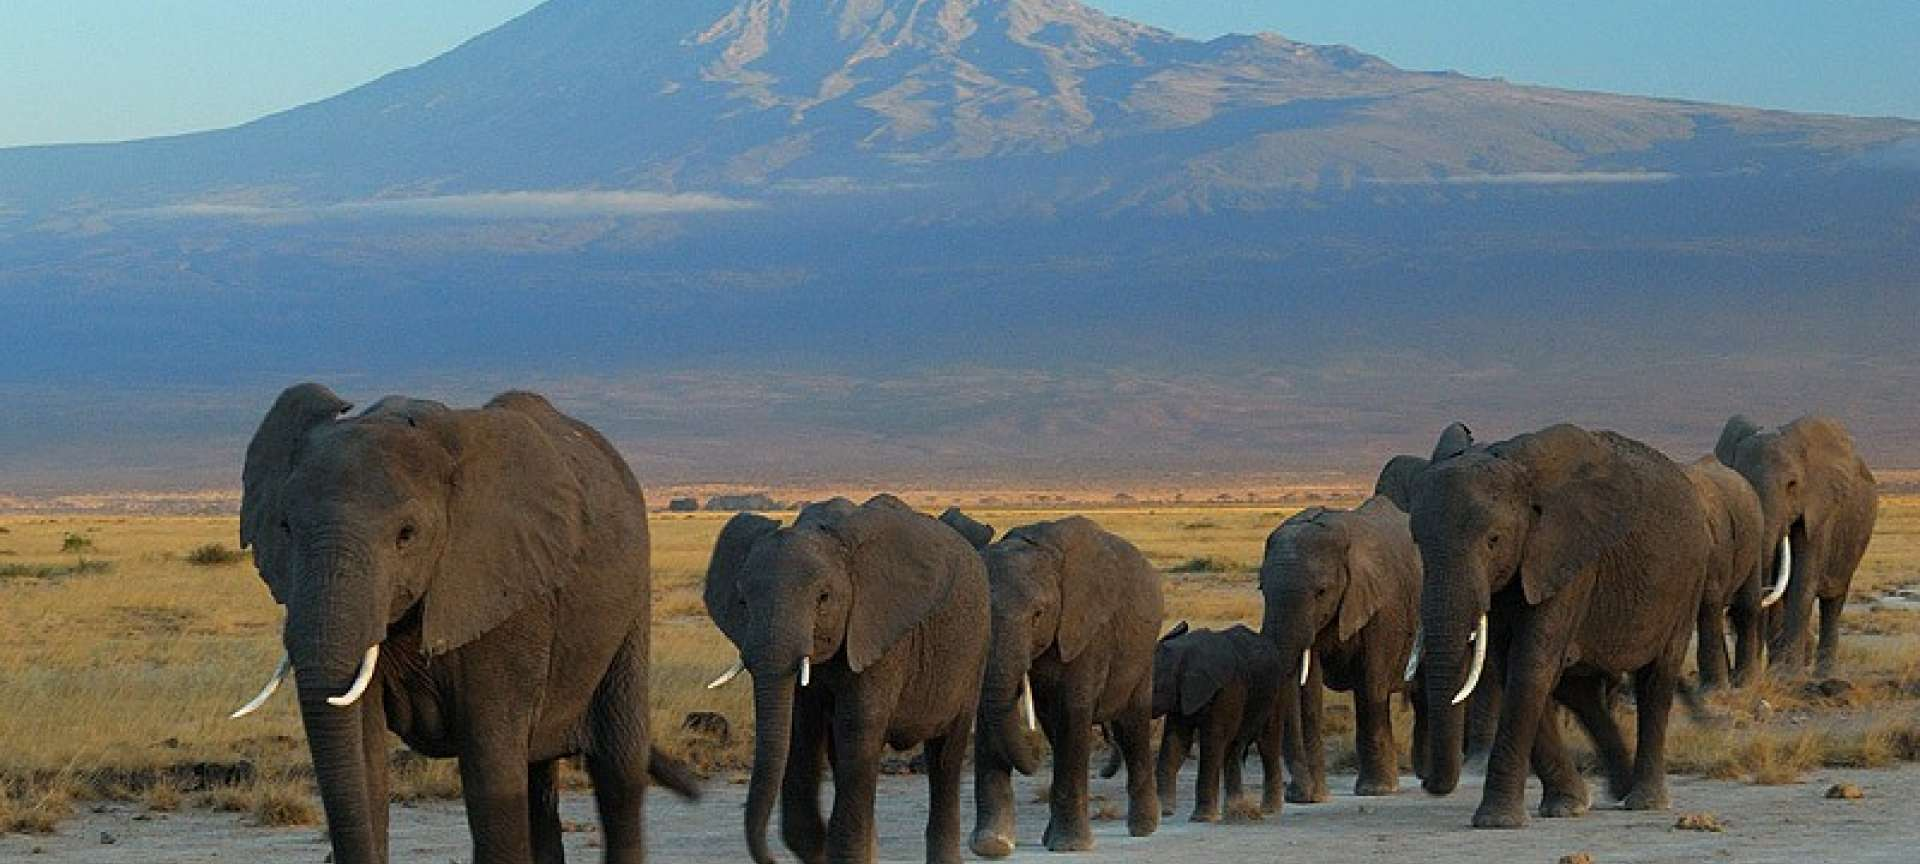 A herd of elephant in Arusha National Park